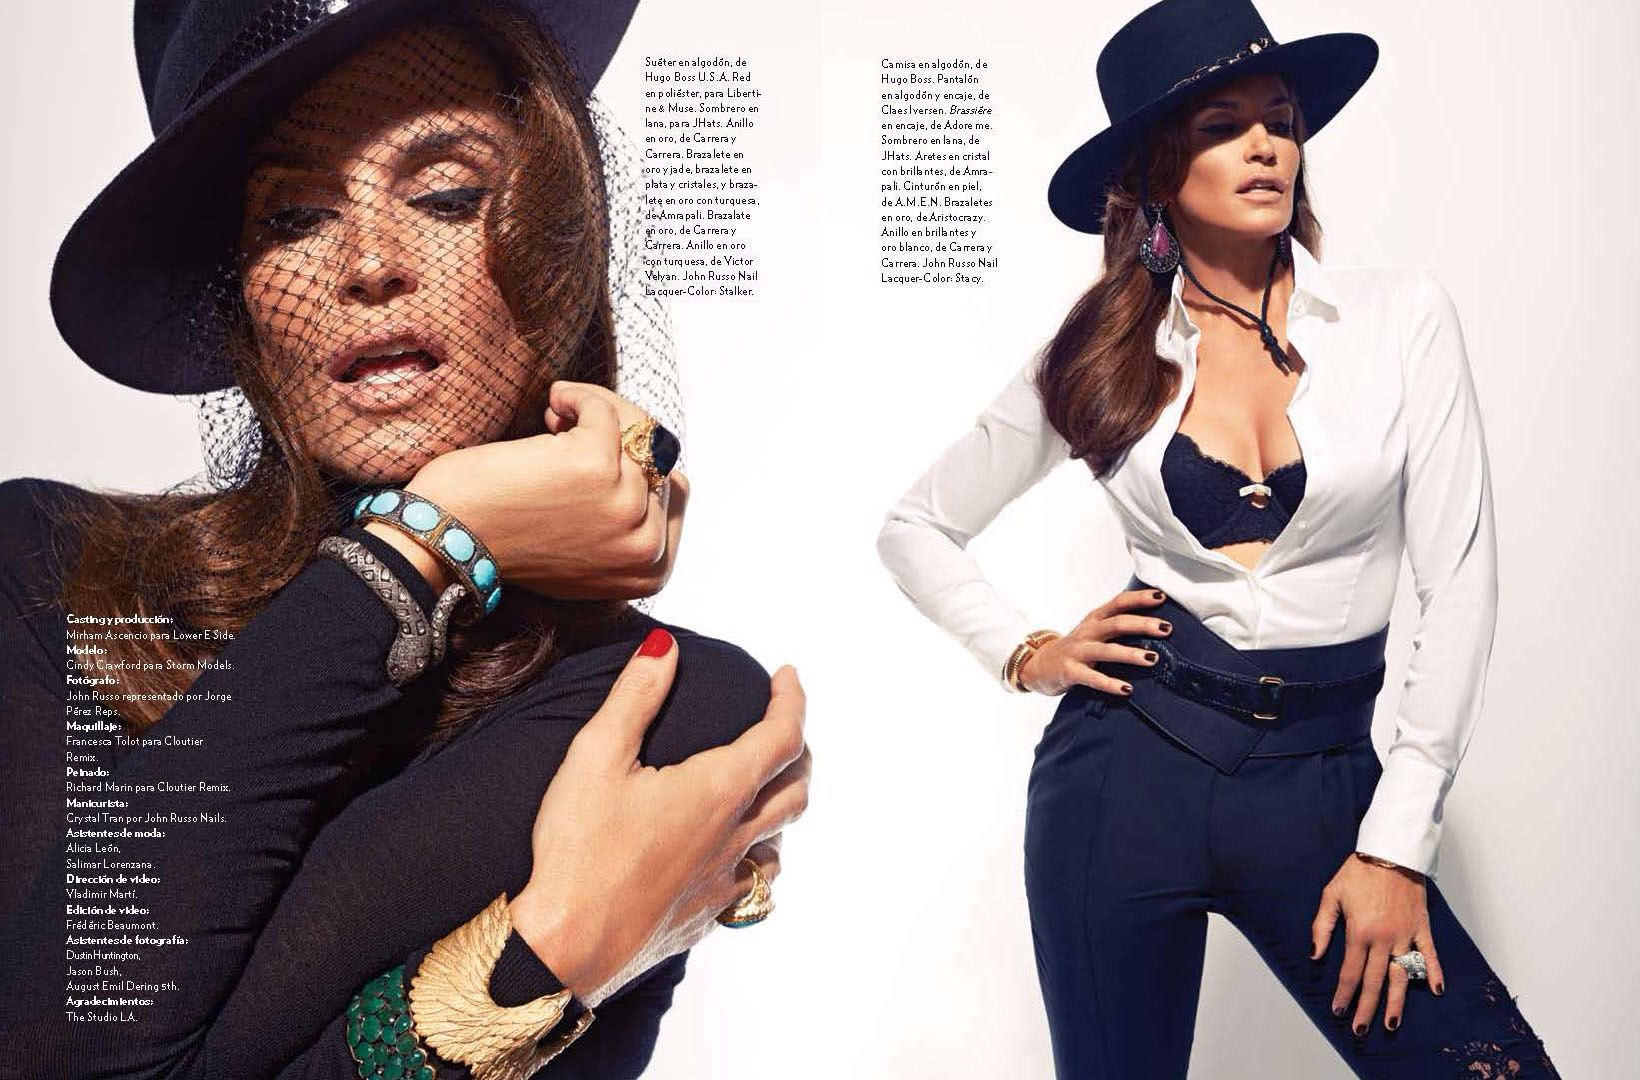 Cindy crawford for december marie claire latin america hair